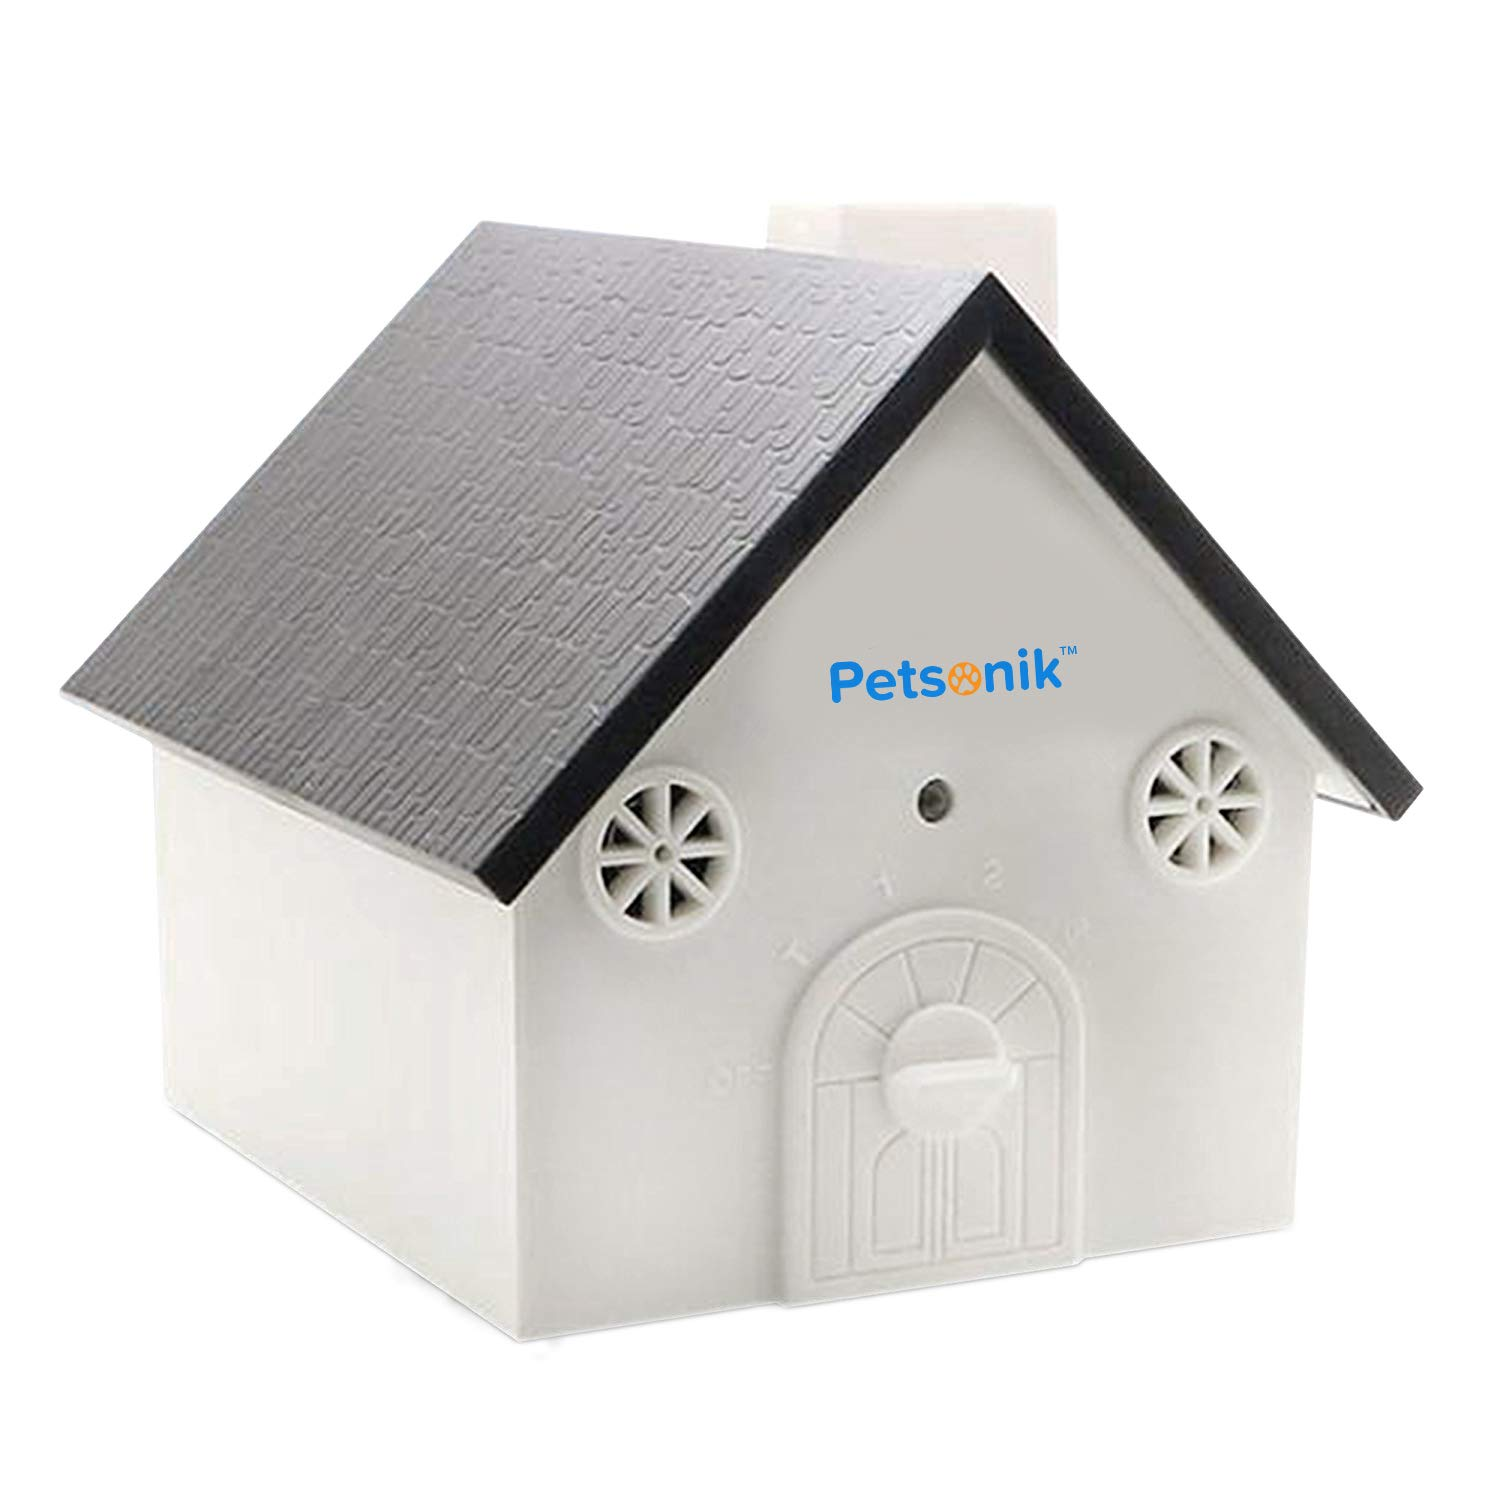 Petsonik Ultrasonic Dog Barking Control Devices in Birdhouse Shape Instantly Regain Your Peace of Mind, Includes Free E-Book on Tips | Outdoor Bark Box - No Harm to Dog | Upgraded Bark House by Petsonik